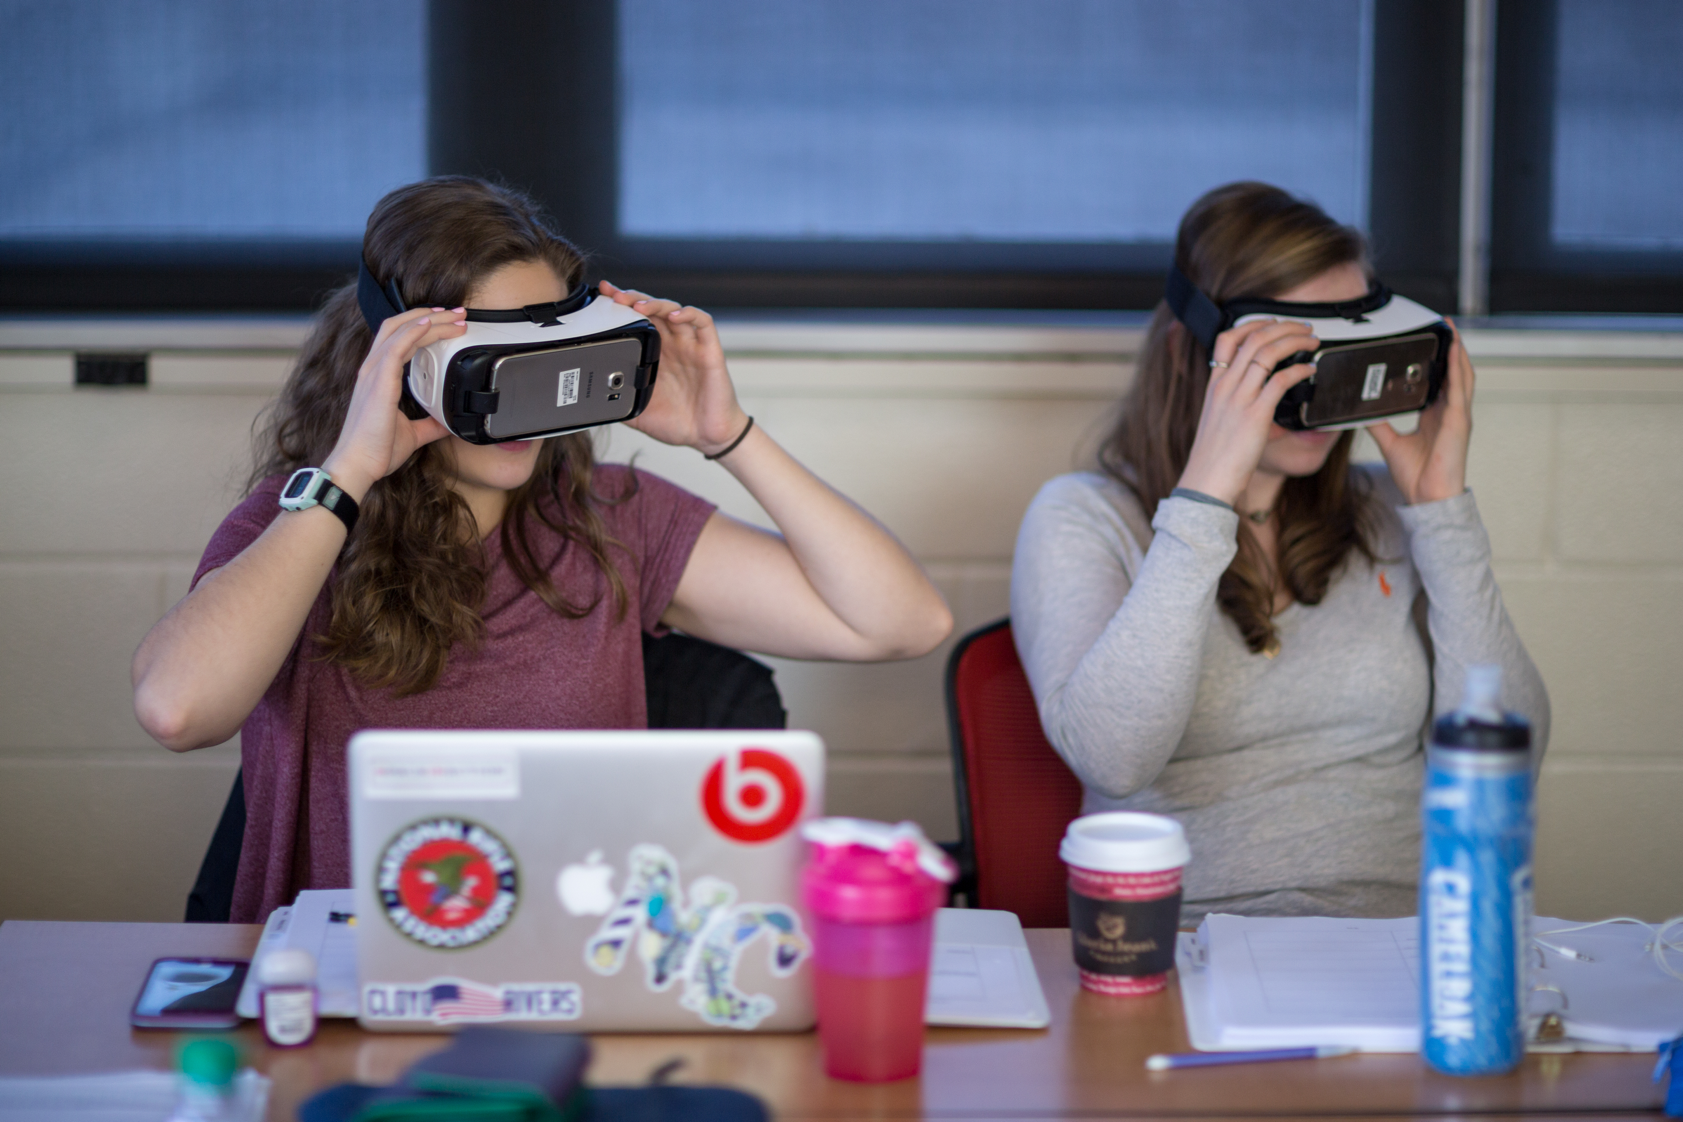 Students wear virtual reality headsets.